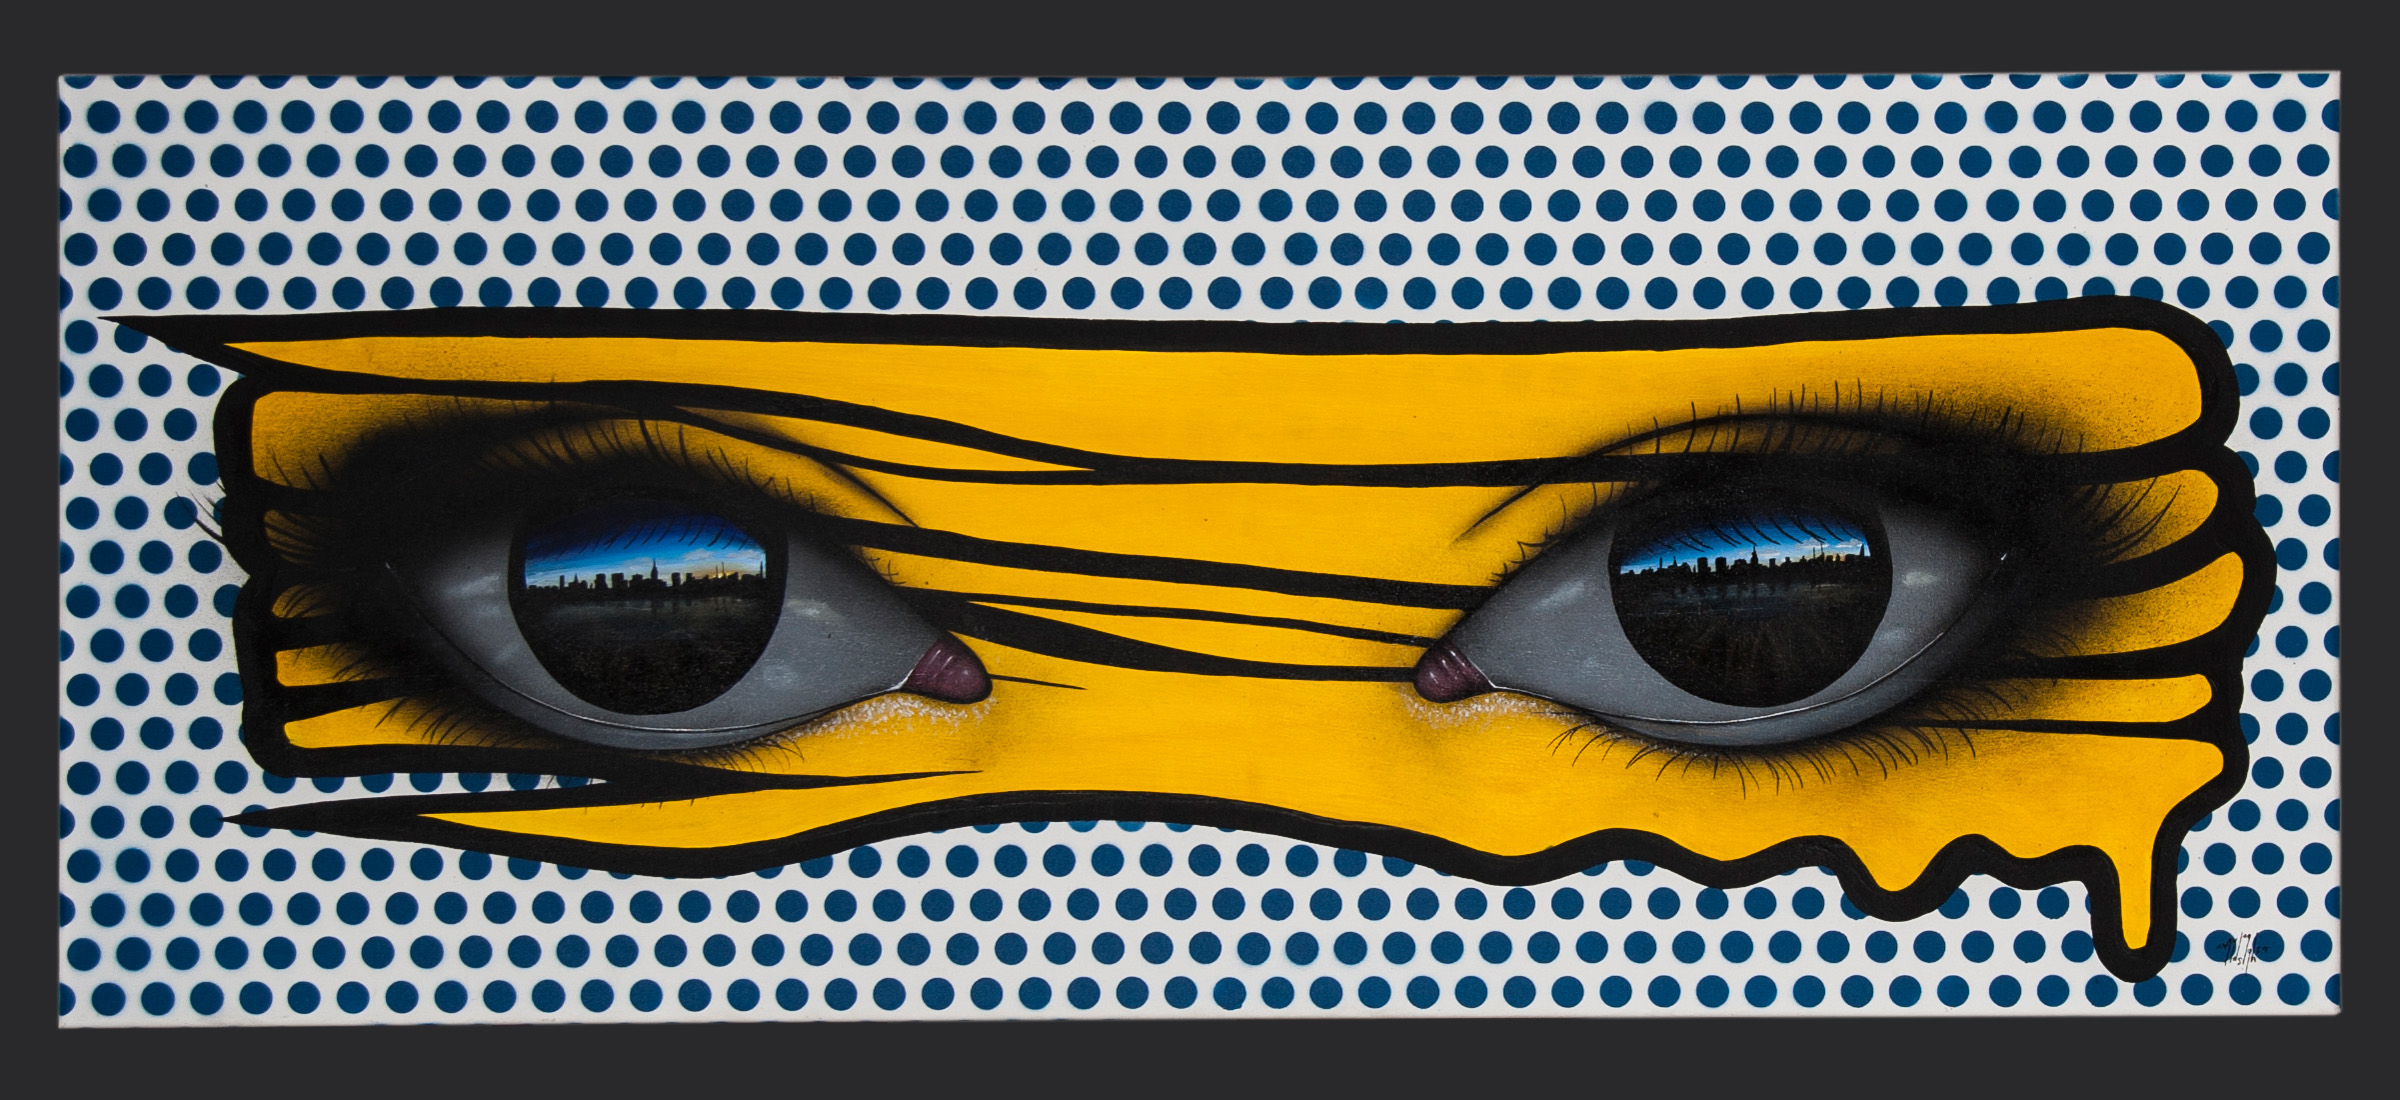 Living Art - My Dog Sighs - Untitled (yellow on blue)